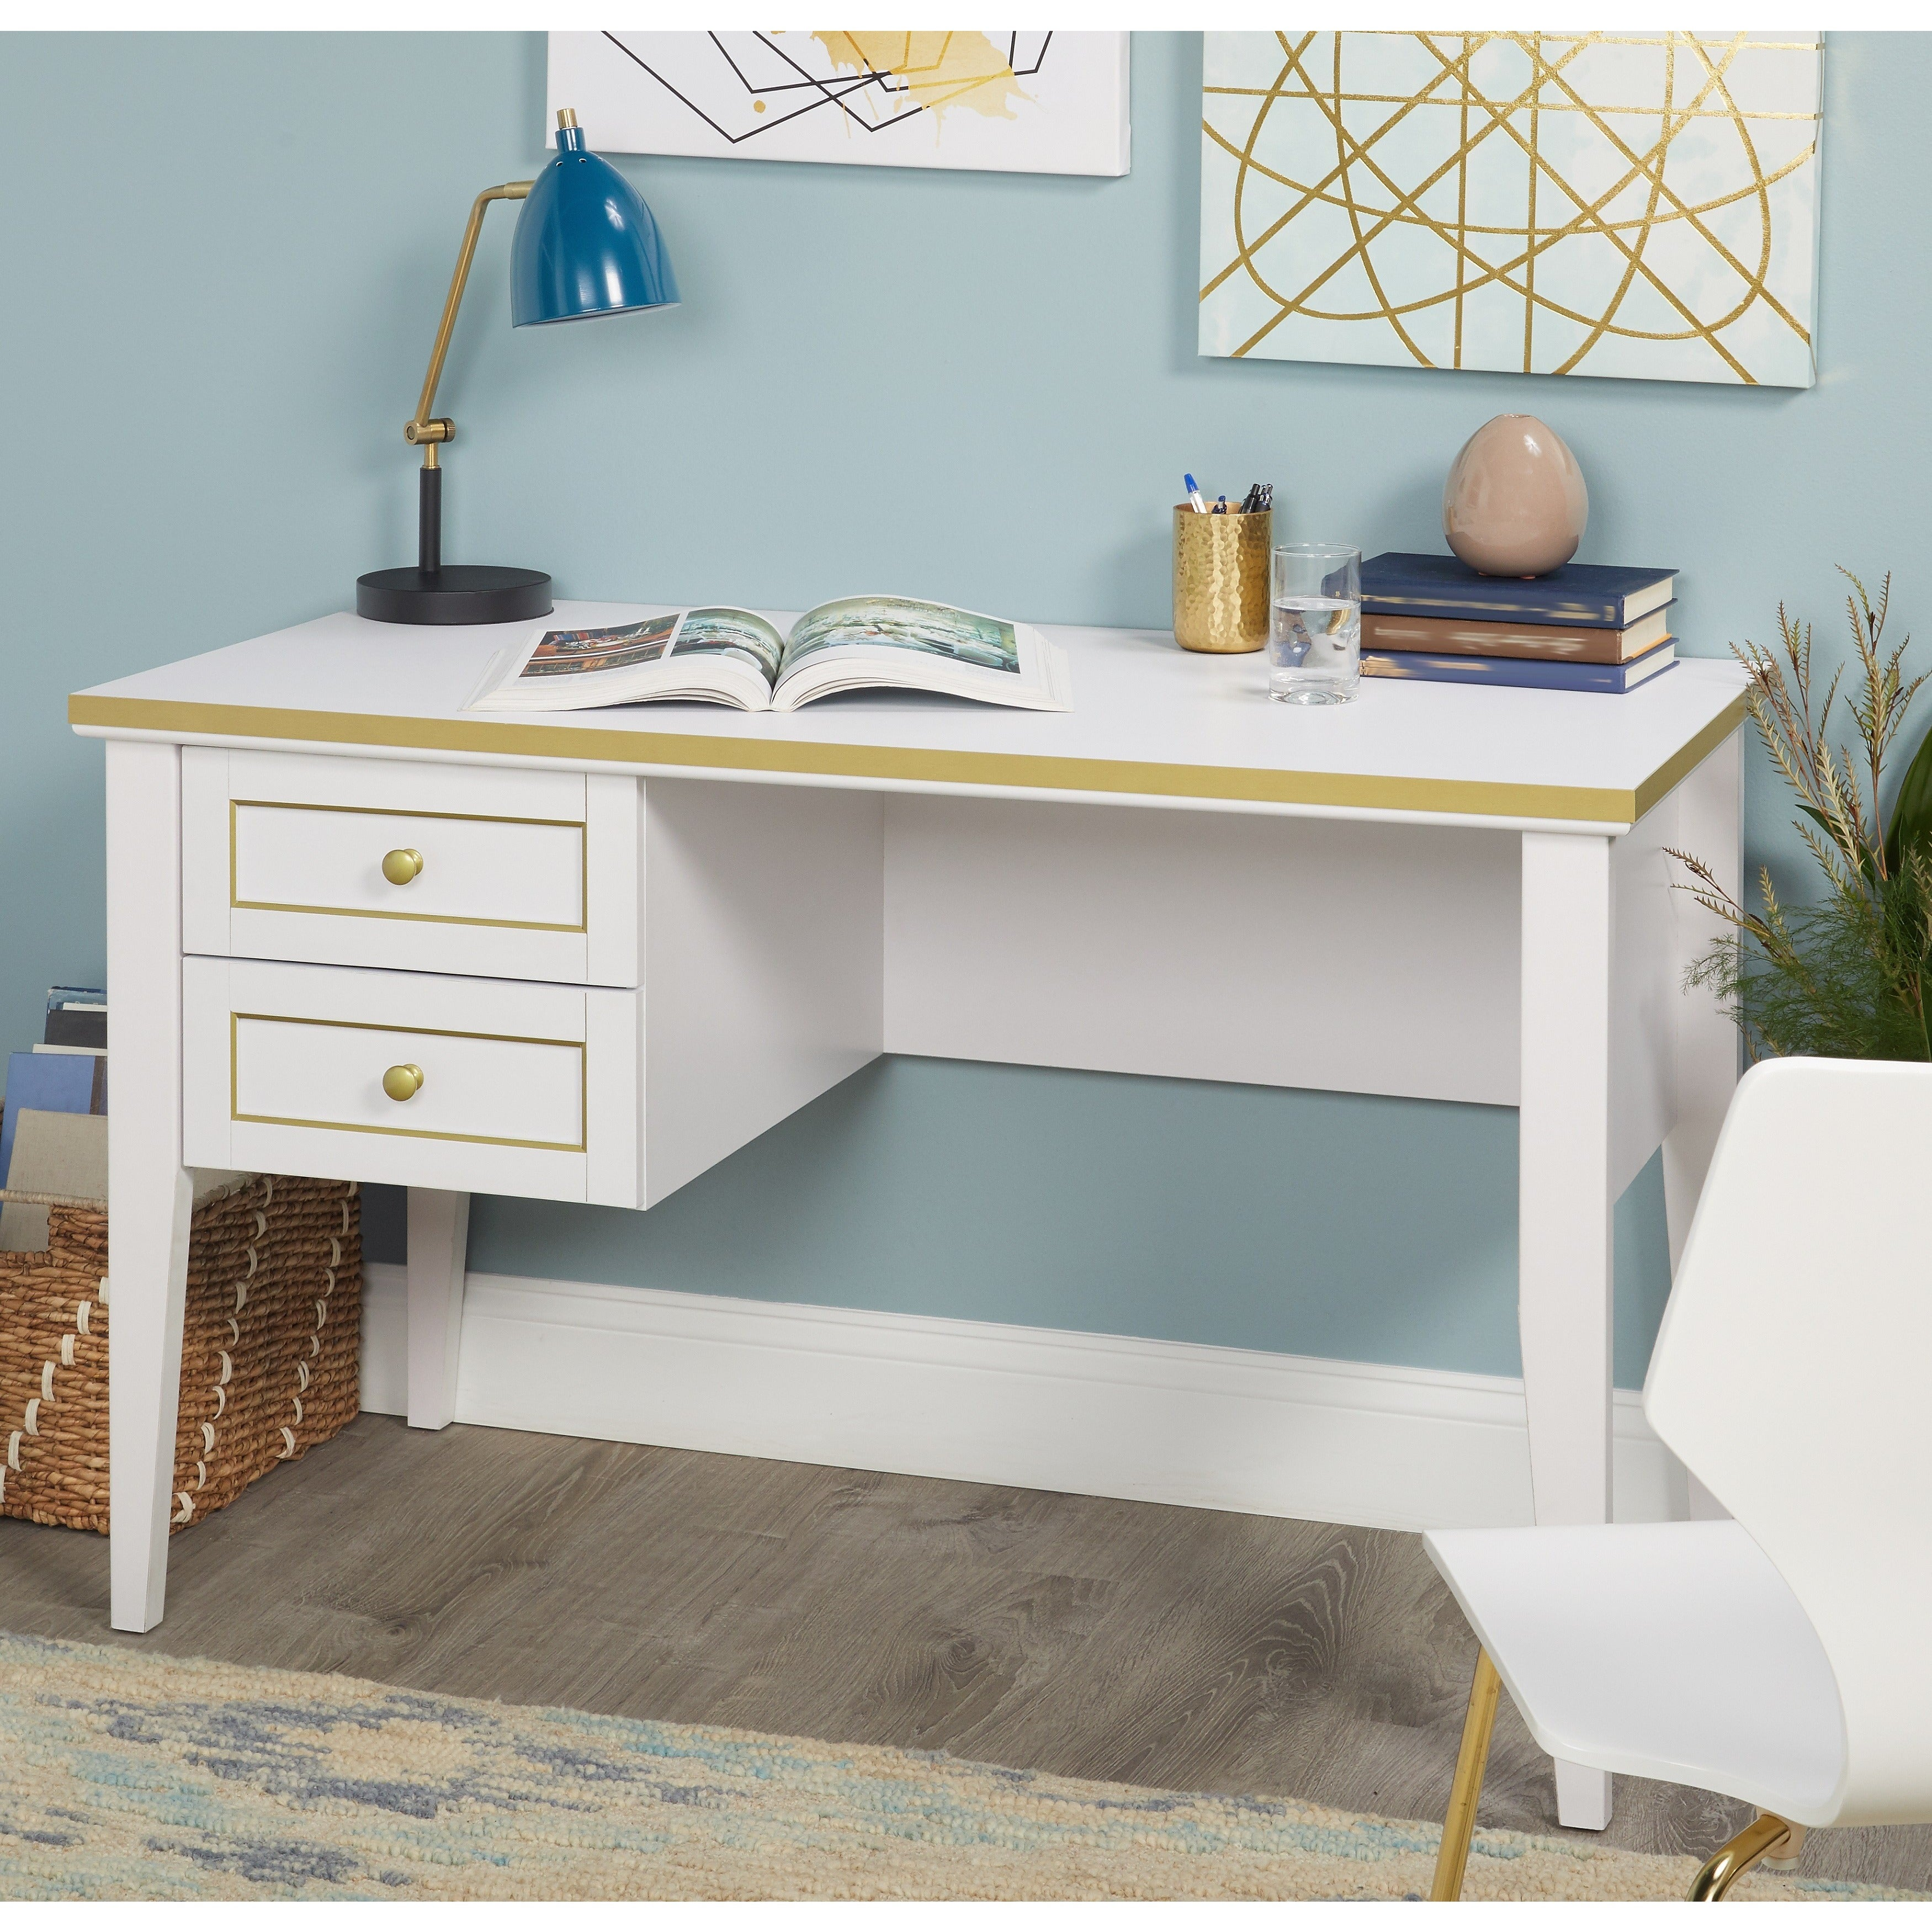 Simple Living Writing Desk Free Shipping Today 25619196